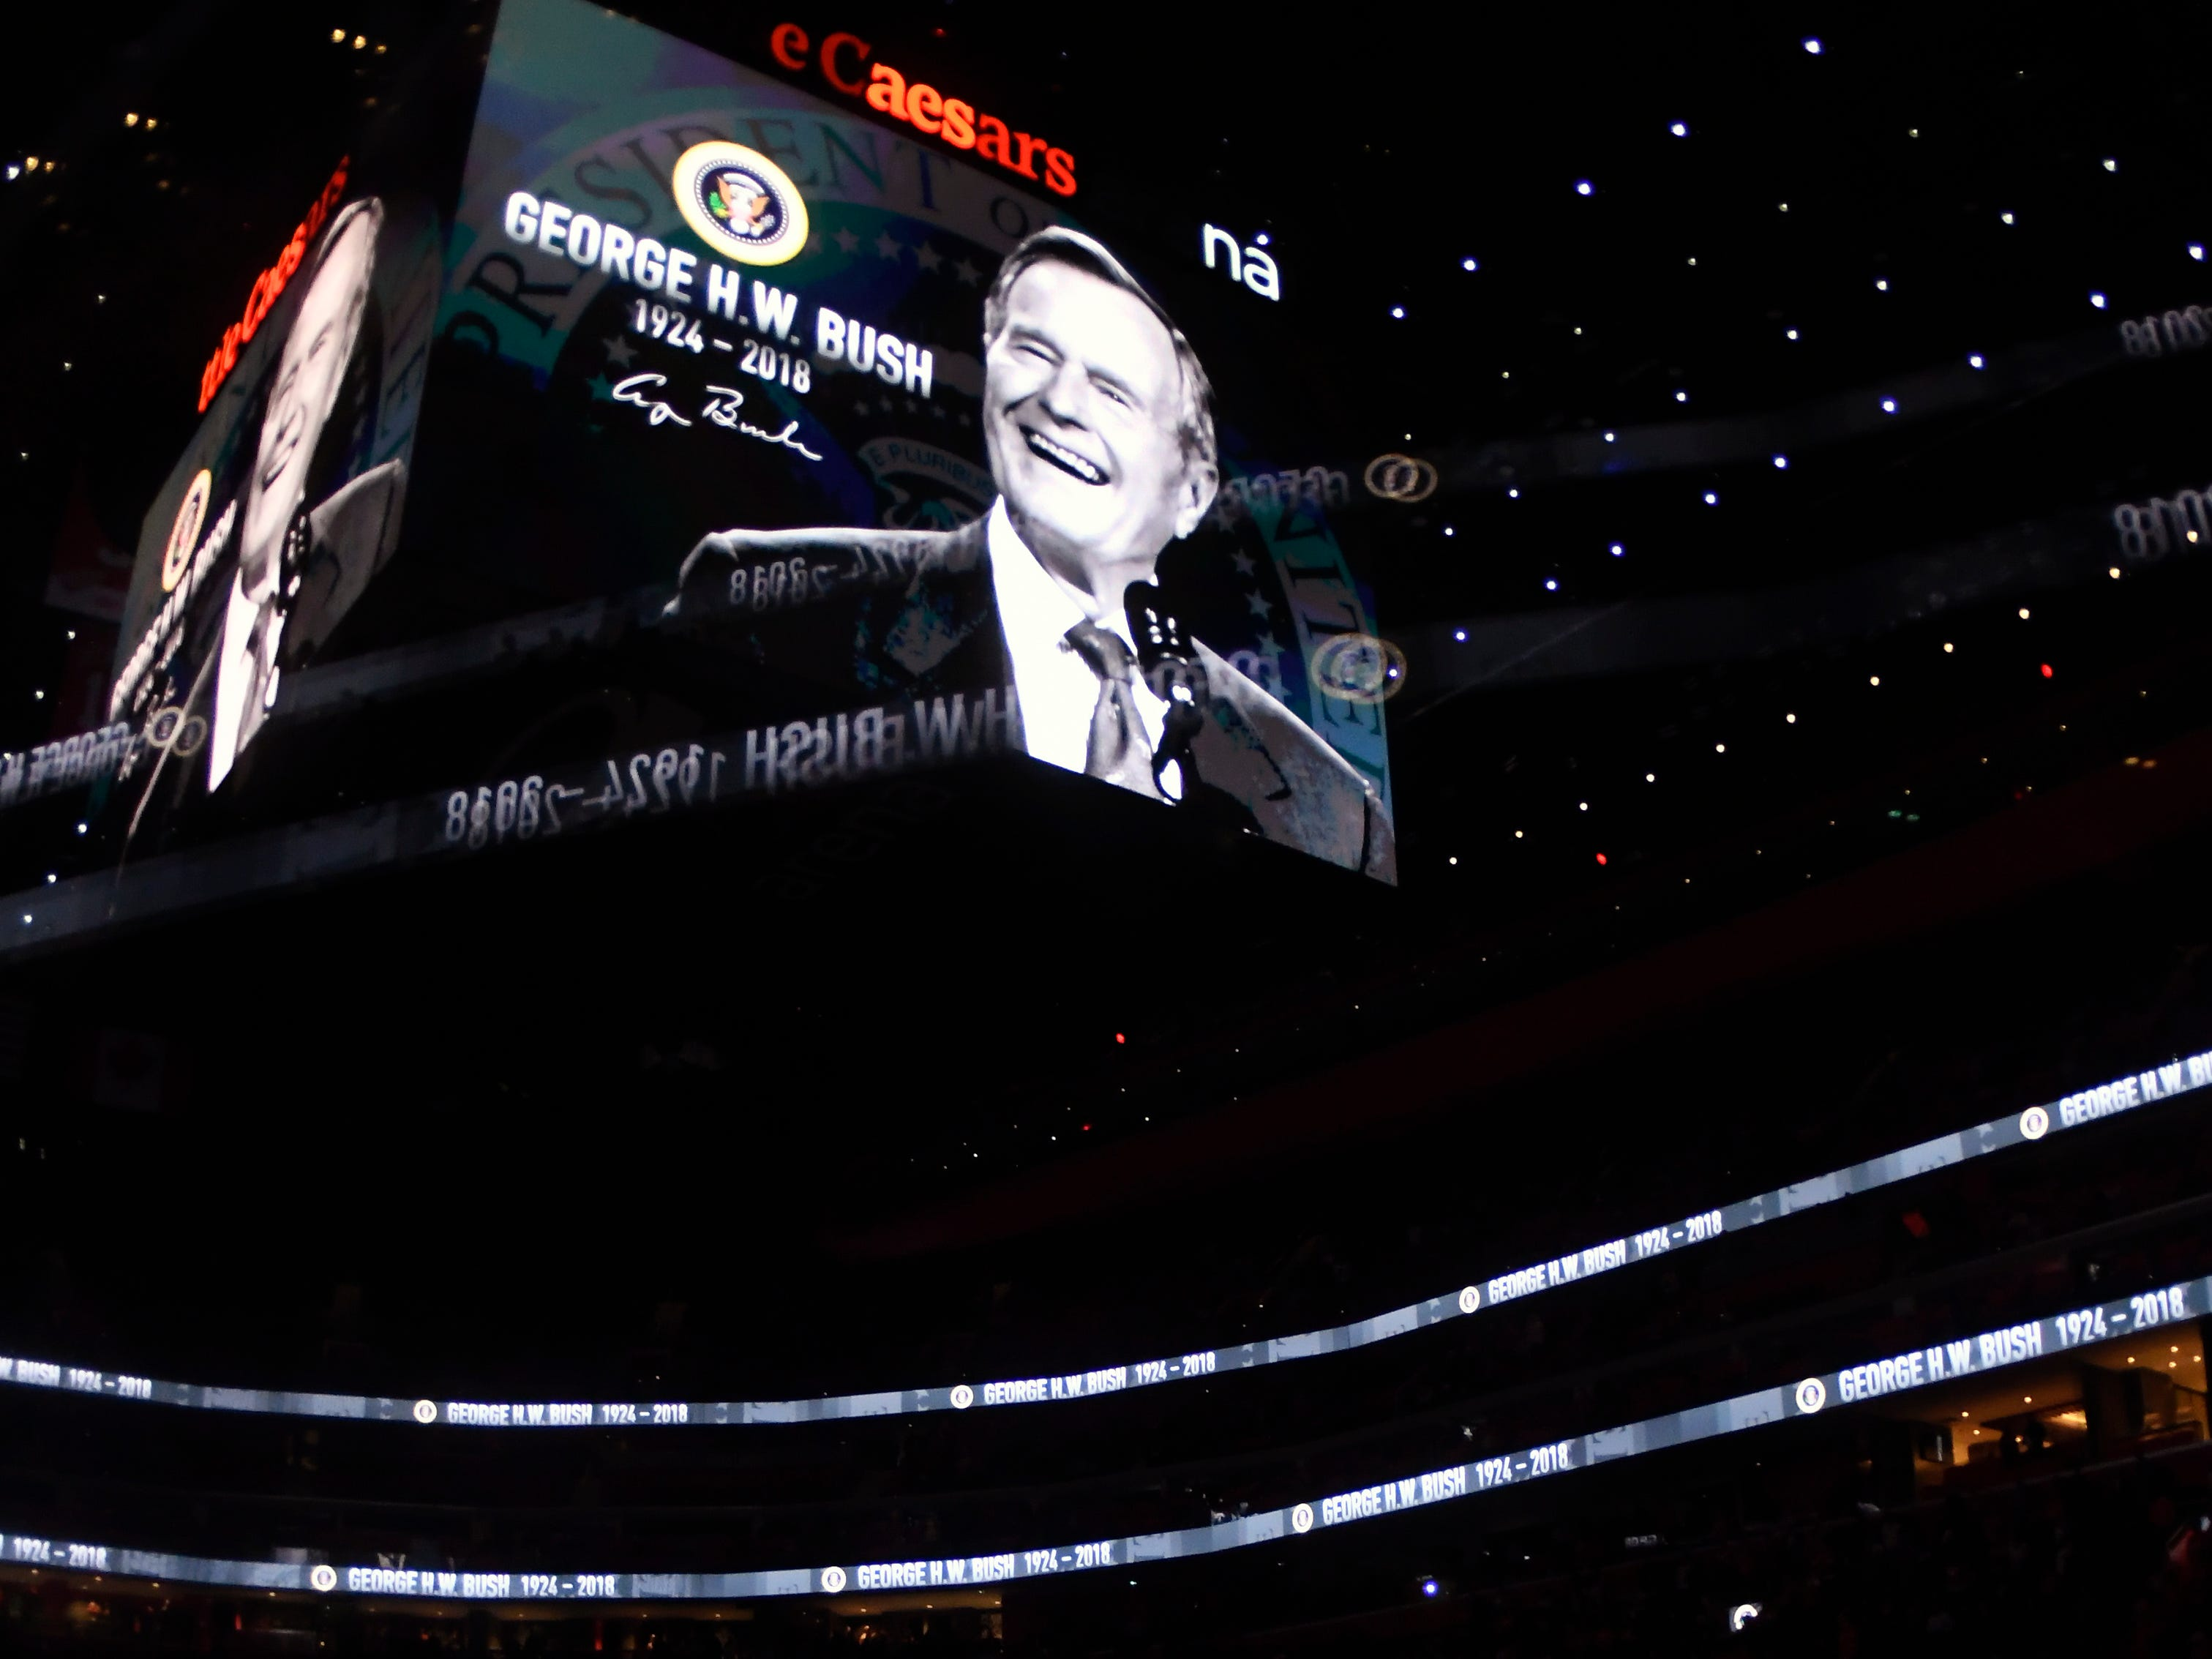 A moment of silence is held for former United States President George H.W. Bush before an NHL hockey game between the Colorado Avalanche and the Detroit Red Wings, Sunday, Dec. 2, 2018, in Detroit. Bush died Friday, Nov. 30, 2018.